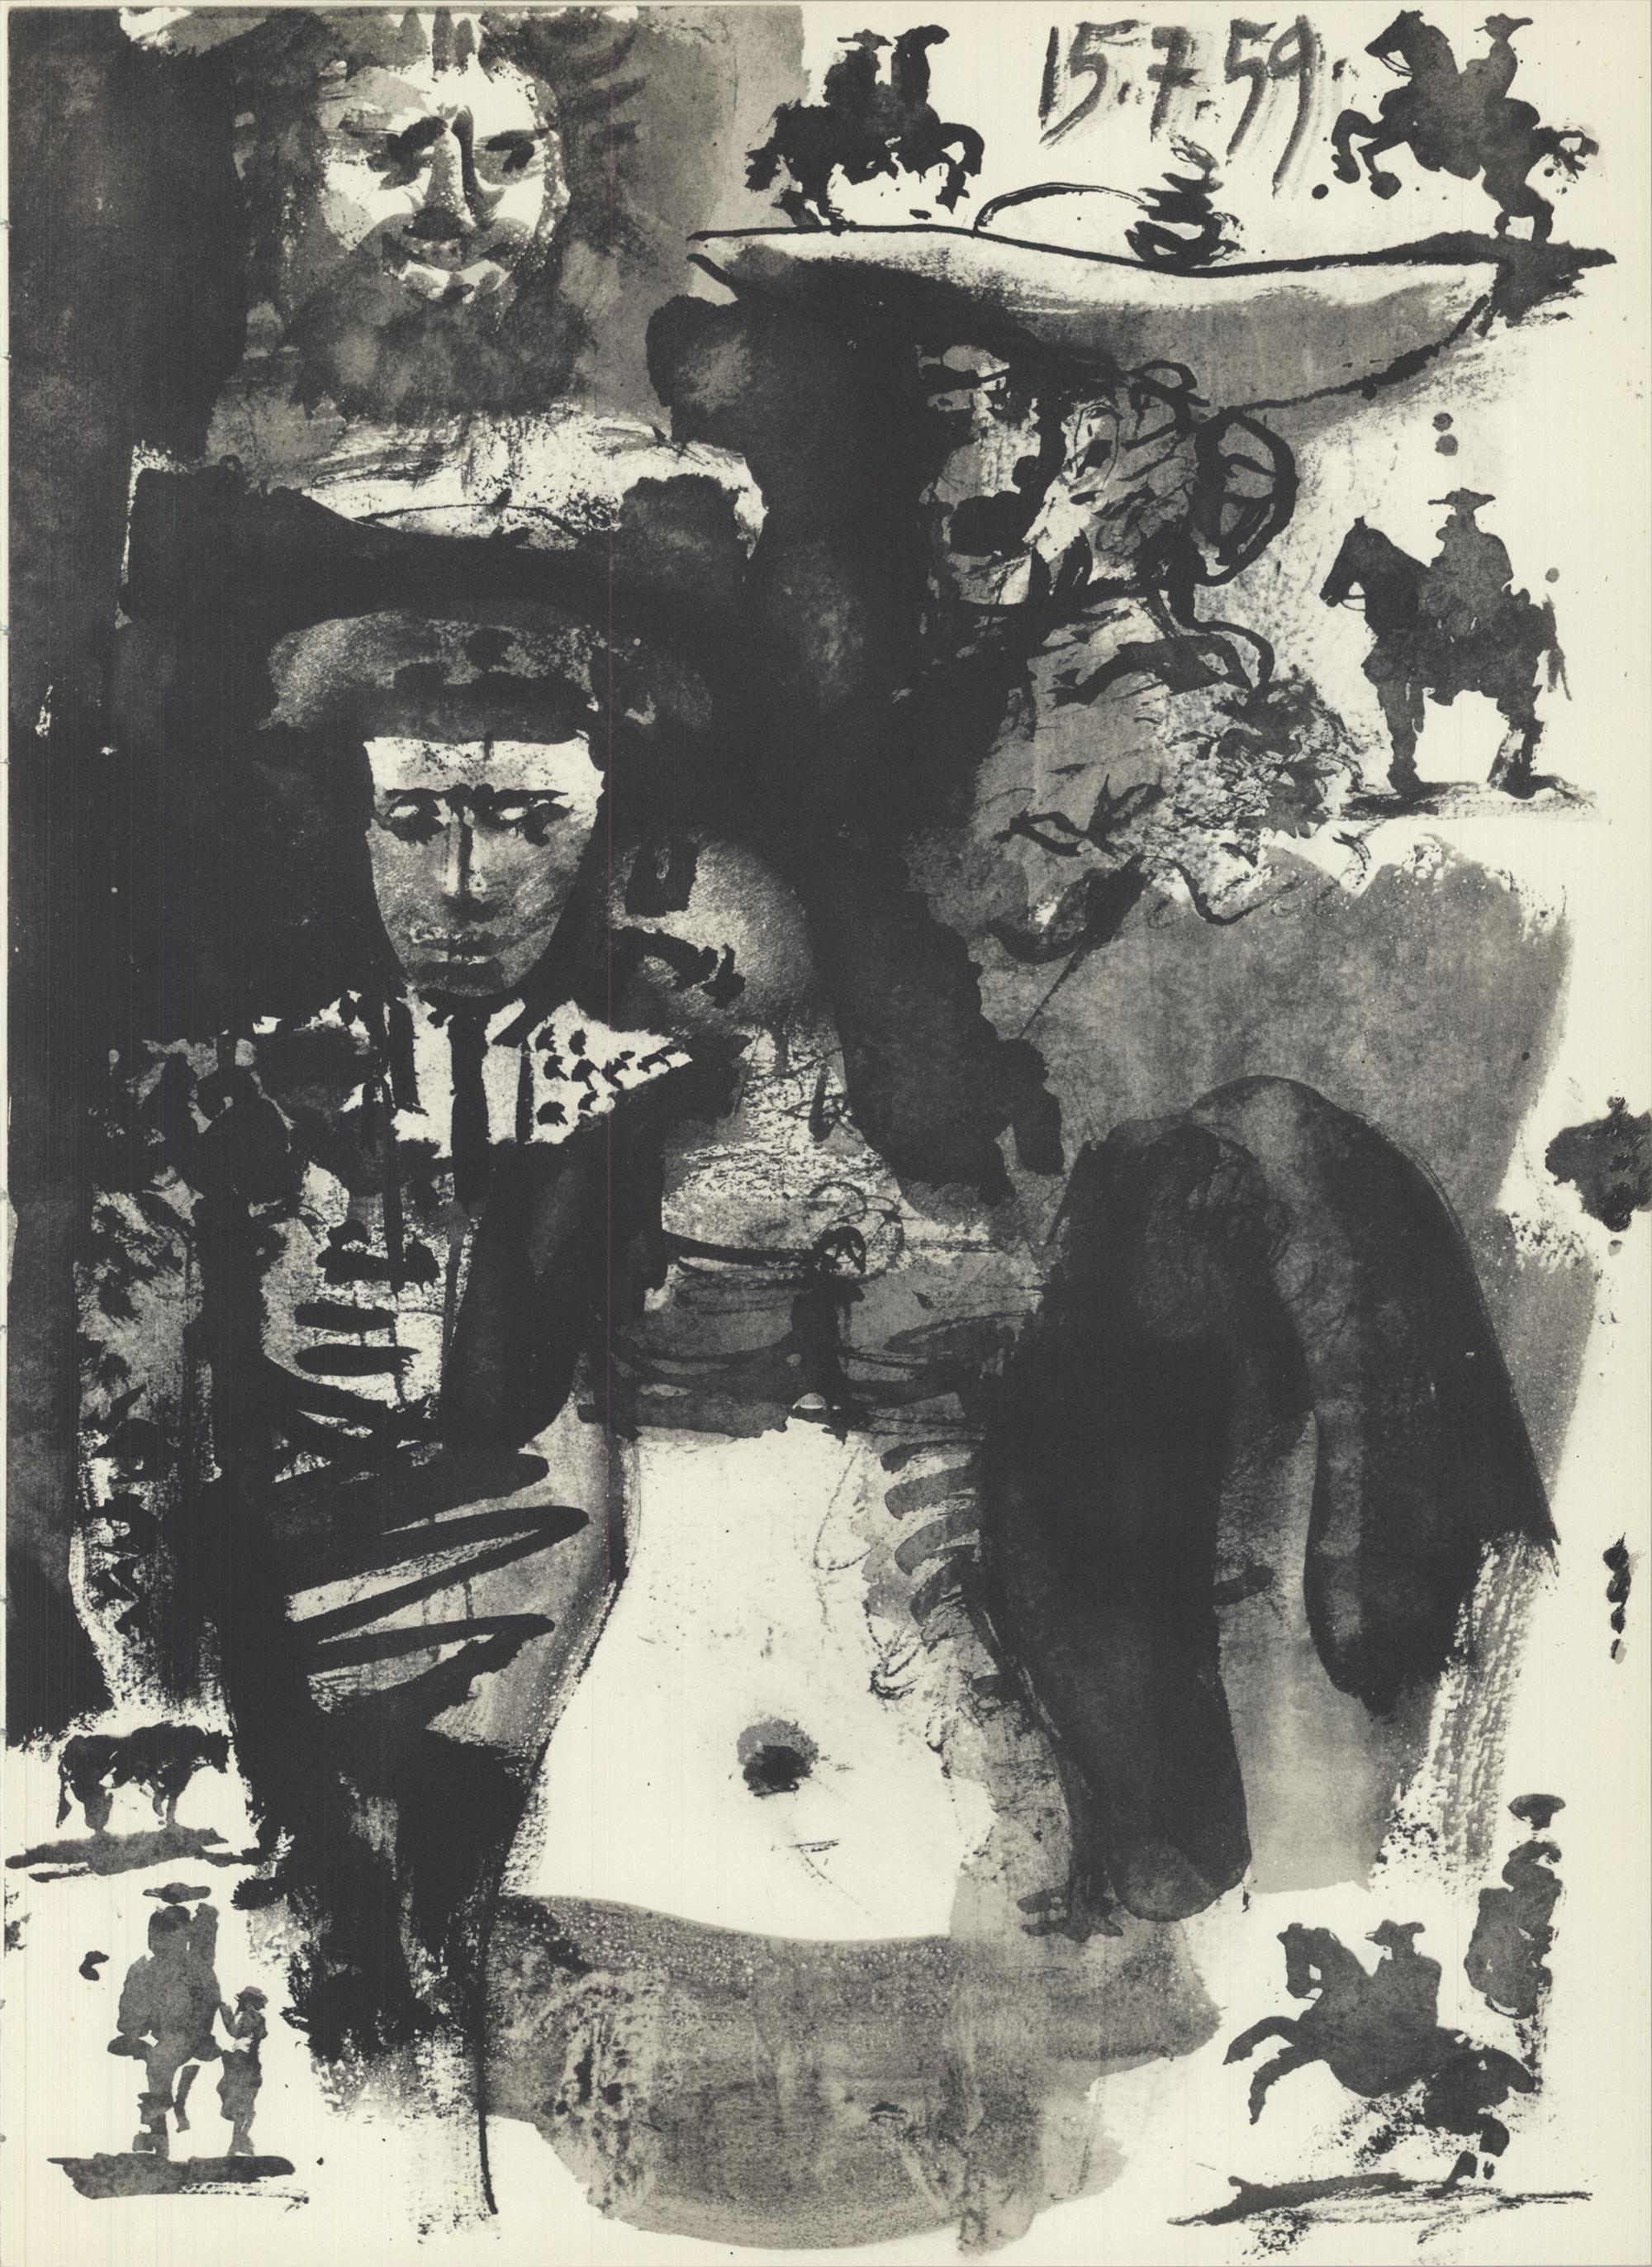 1959 Pablo Picasso 'Study of Bullfighter' Lithograph